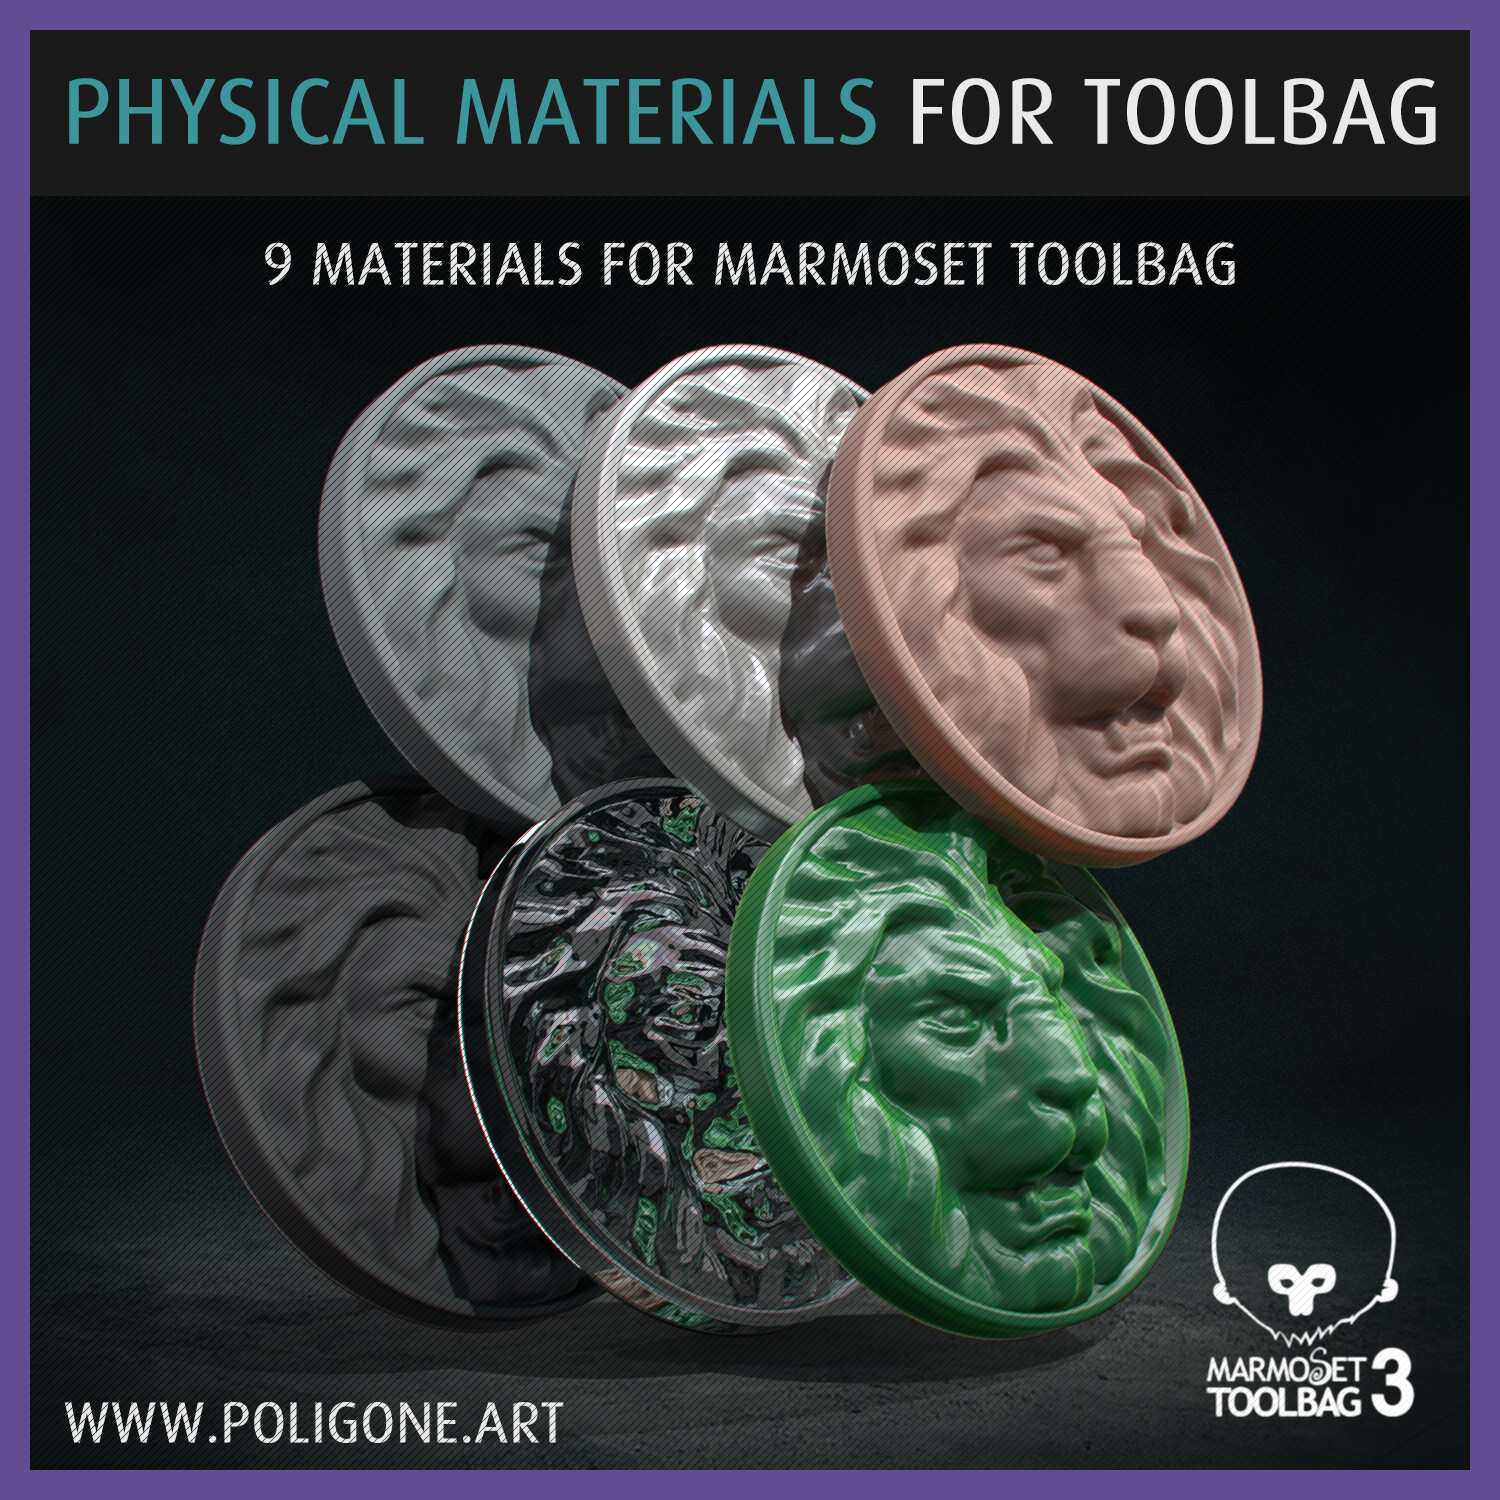 Physical Materials for Marmoset Toolbag